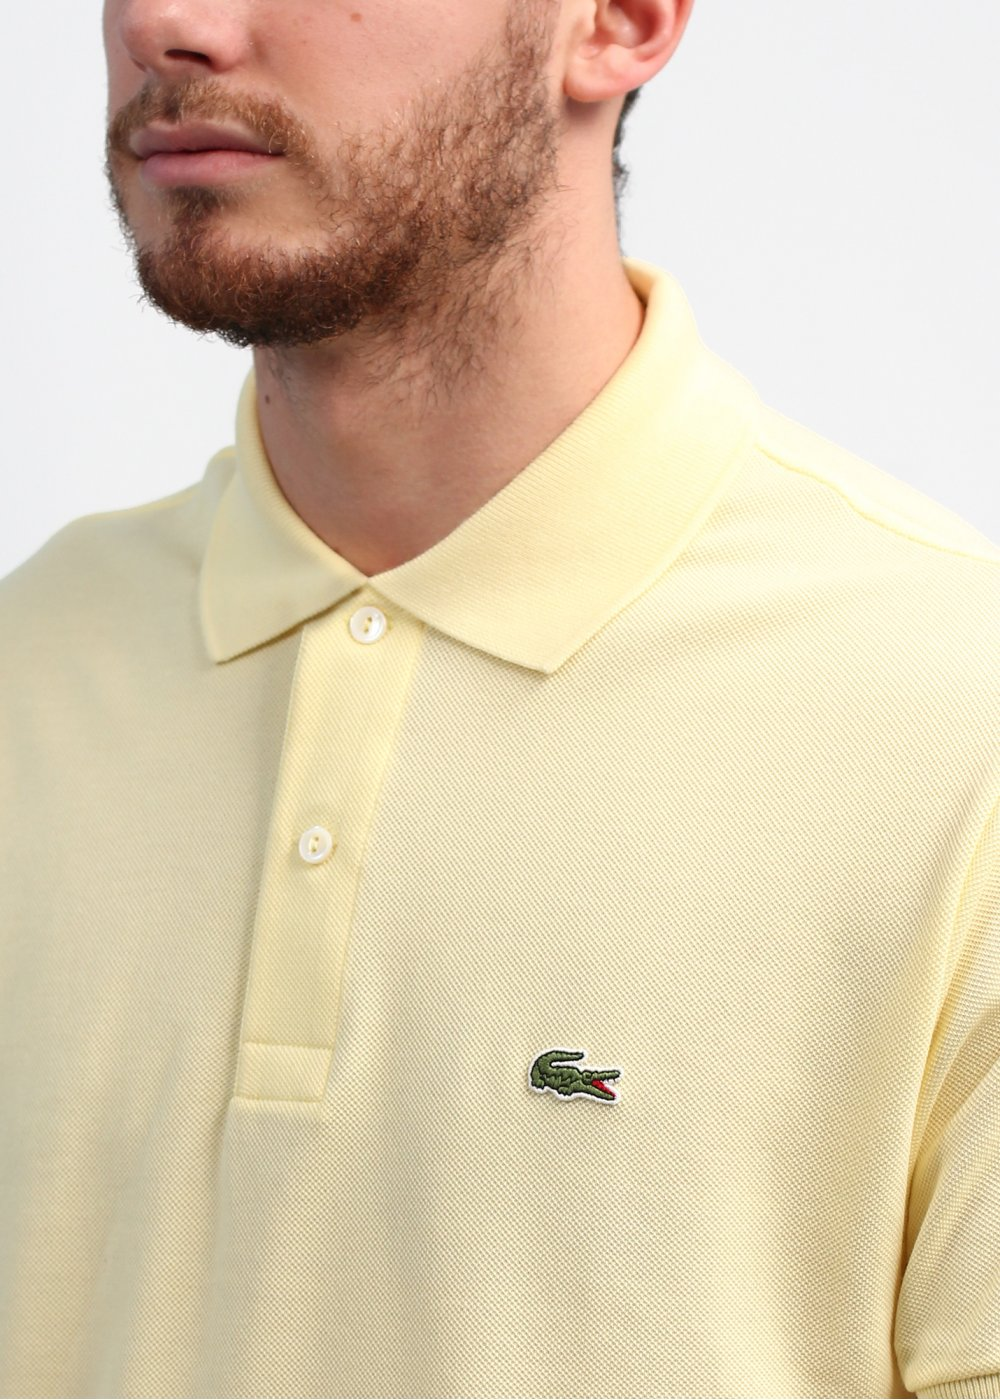 beige lacoste polo shirt